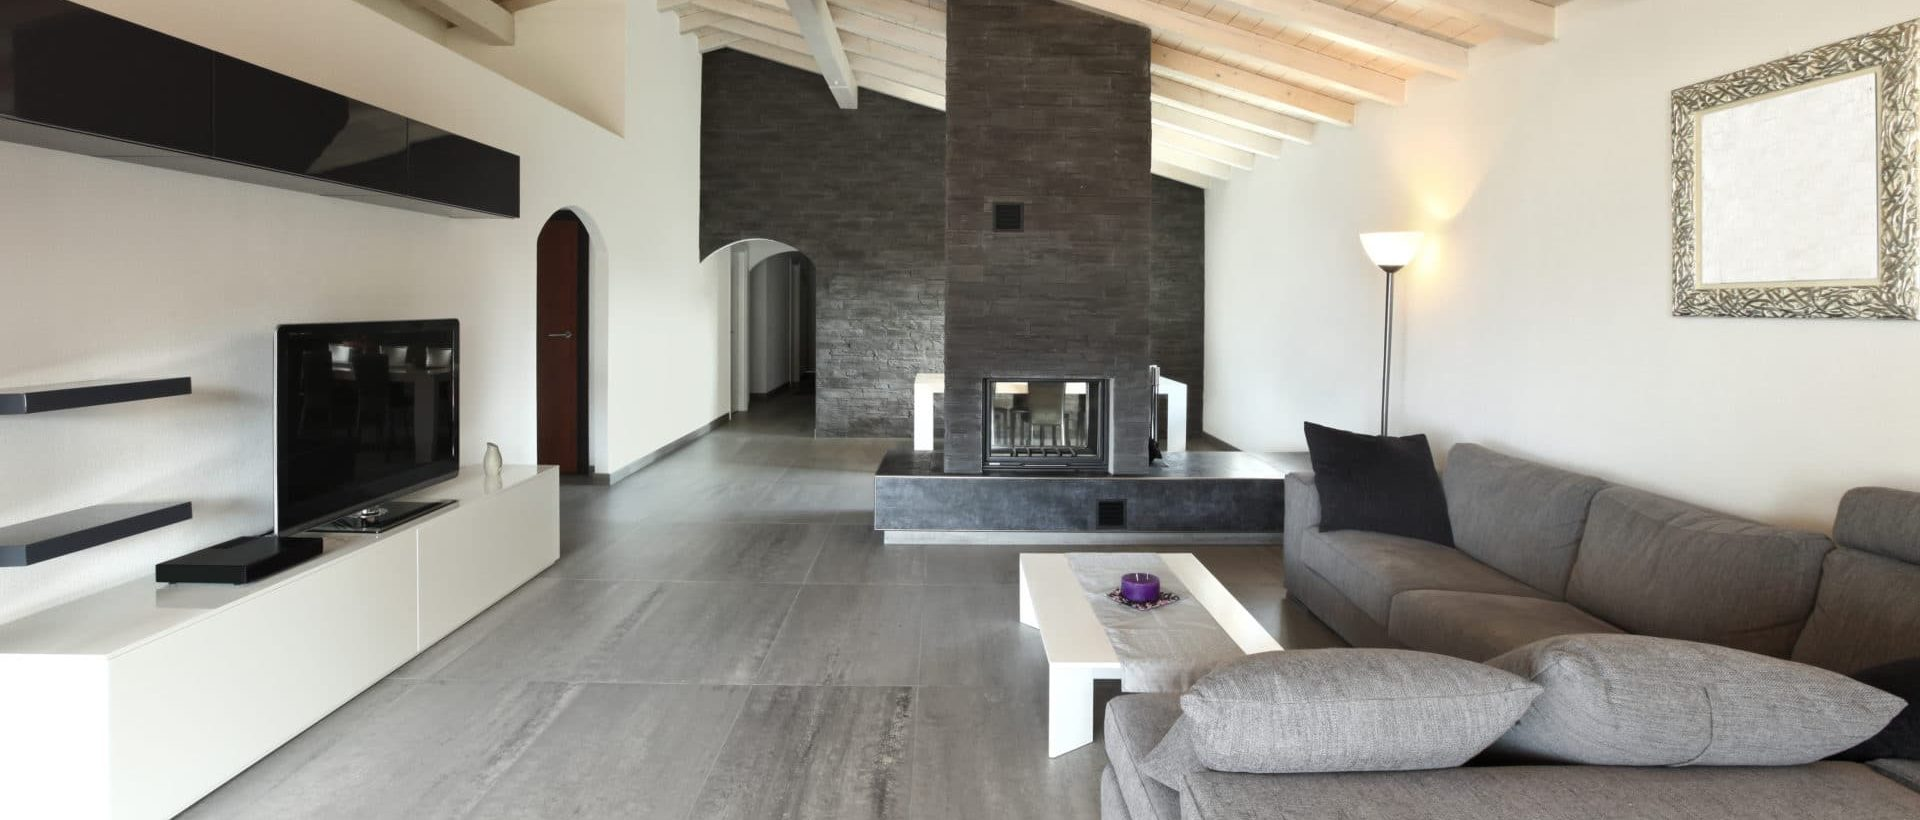 Amenagement interieur agencement interieur illico travaux - Interieur maison ...